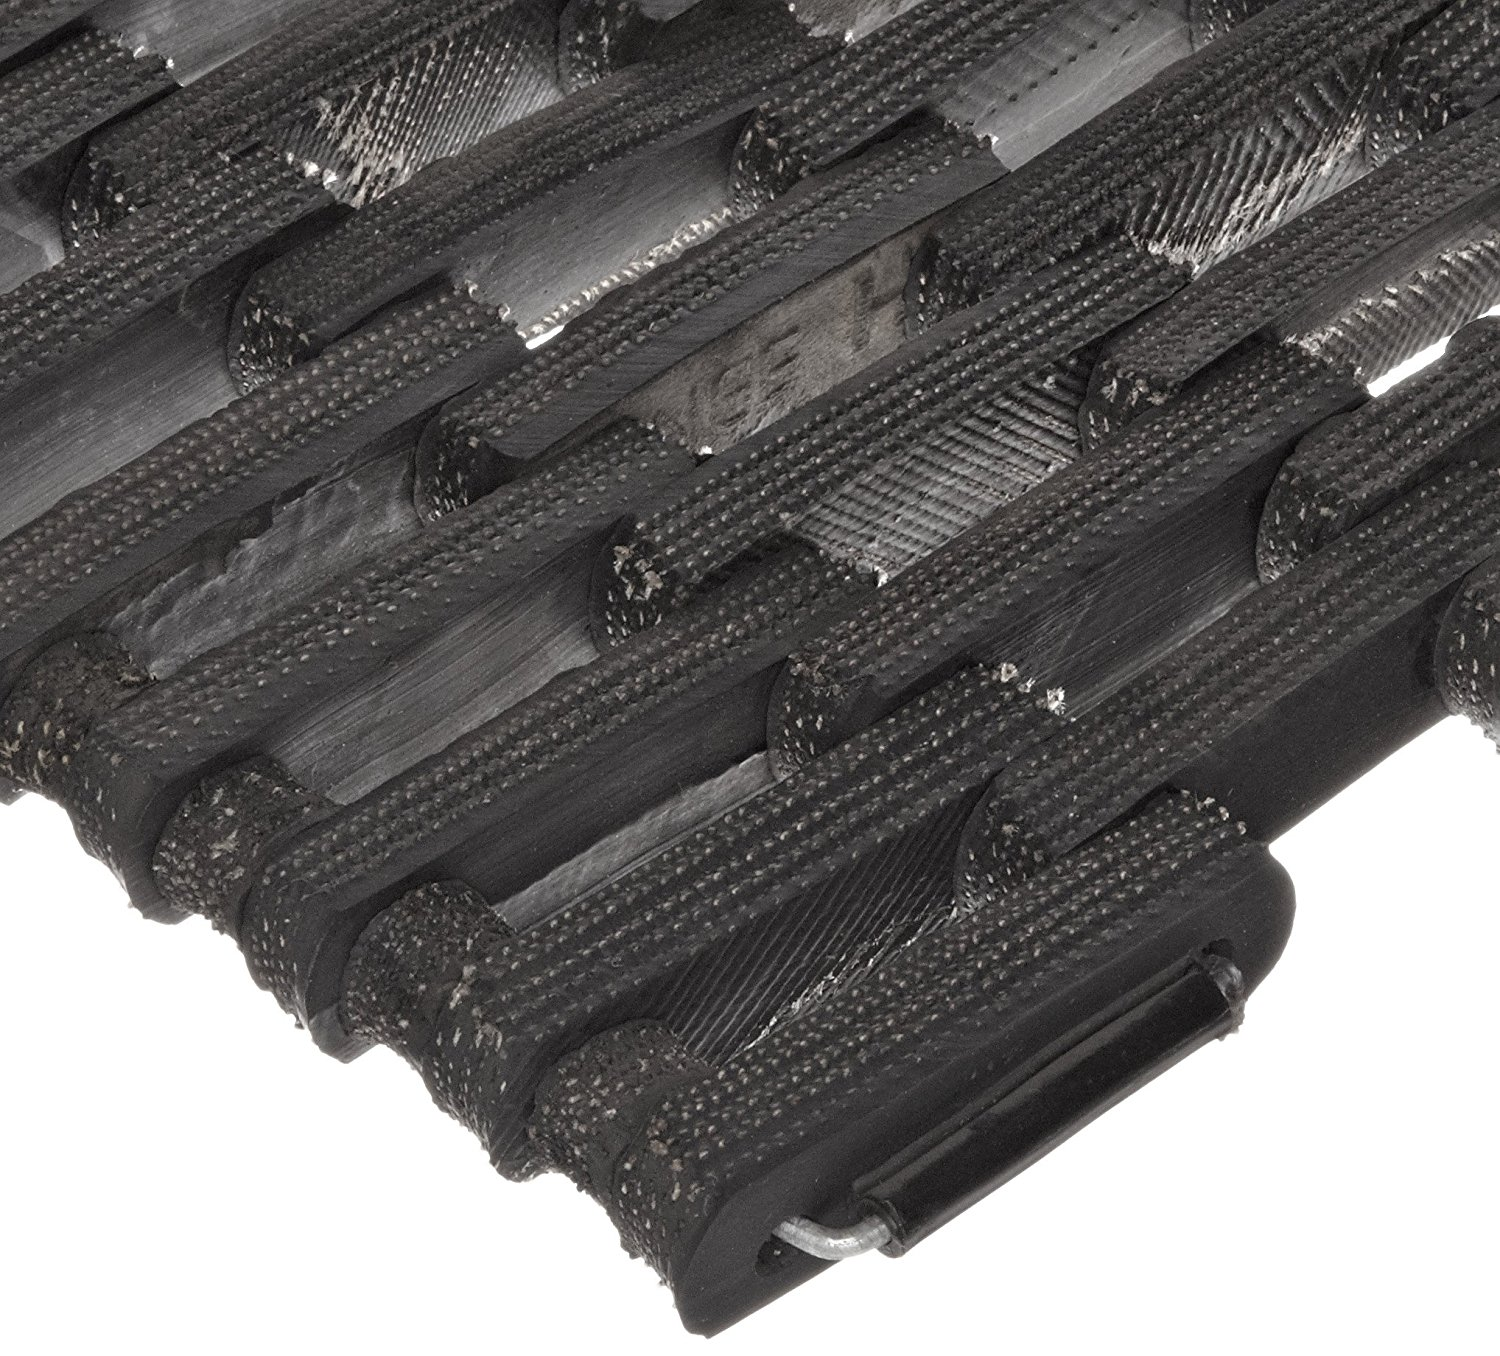 Durable Corporation 108 Recycled Tire-Link Anti-Fatigue Mat, for Wet Areas, Straight Weave, 14' Width x 22' Length x 5/8' Thickness, Black